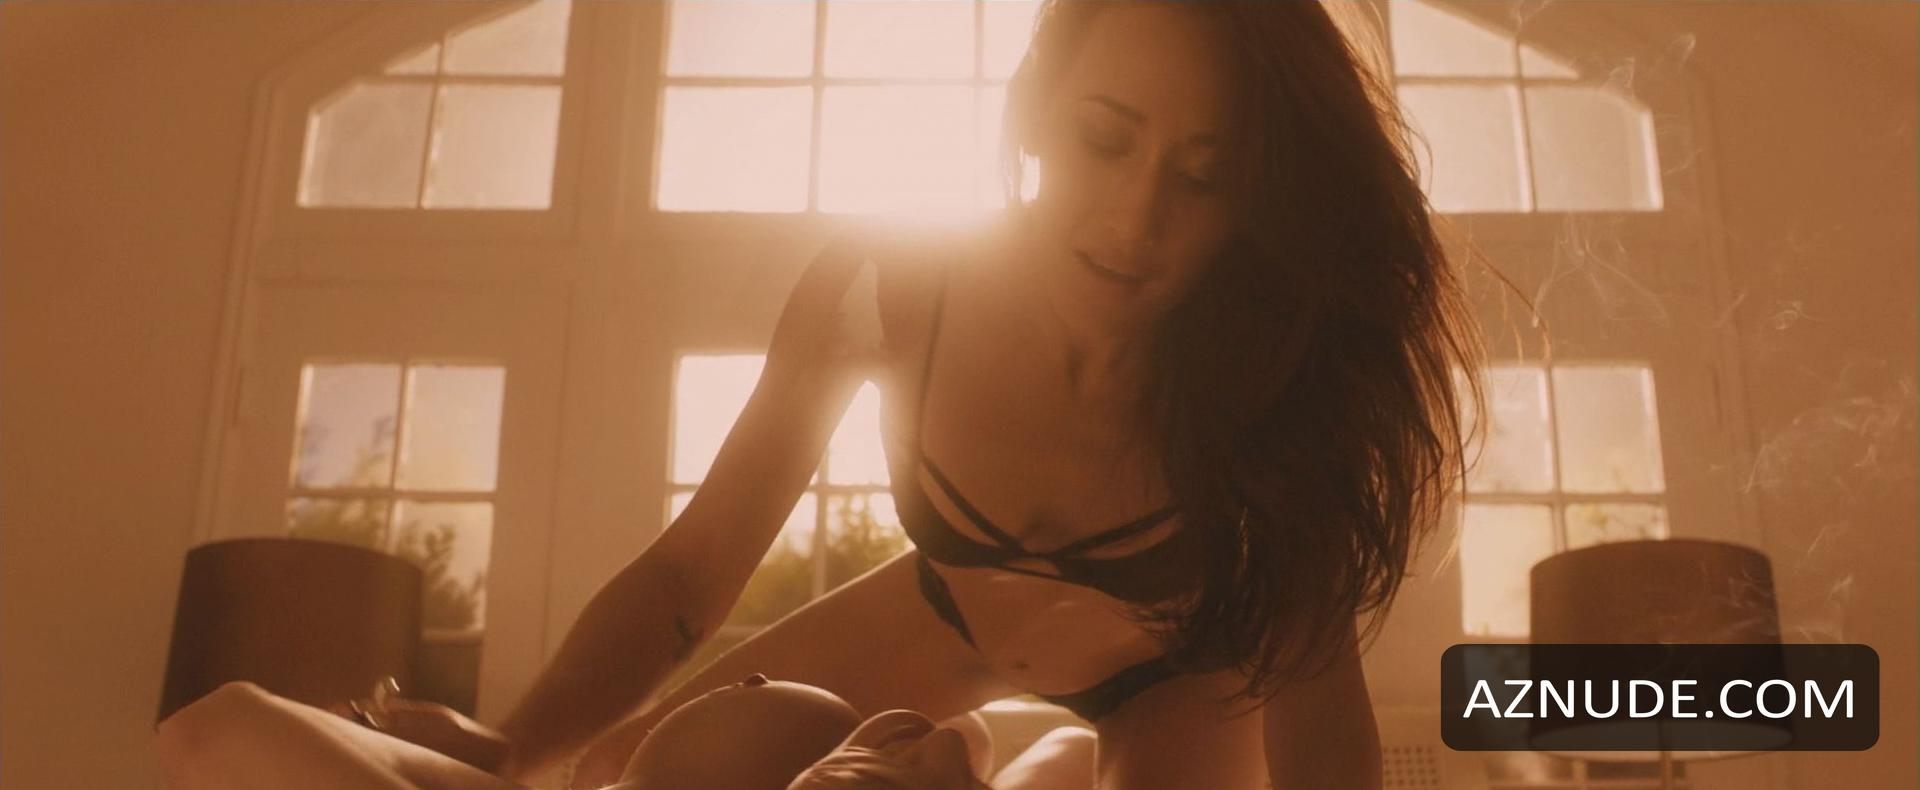 Maggie q naked pictures-7688